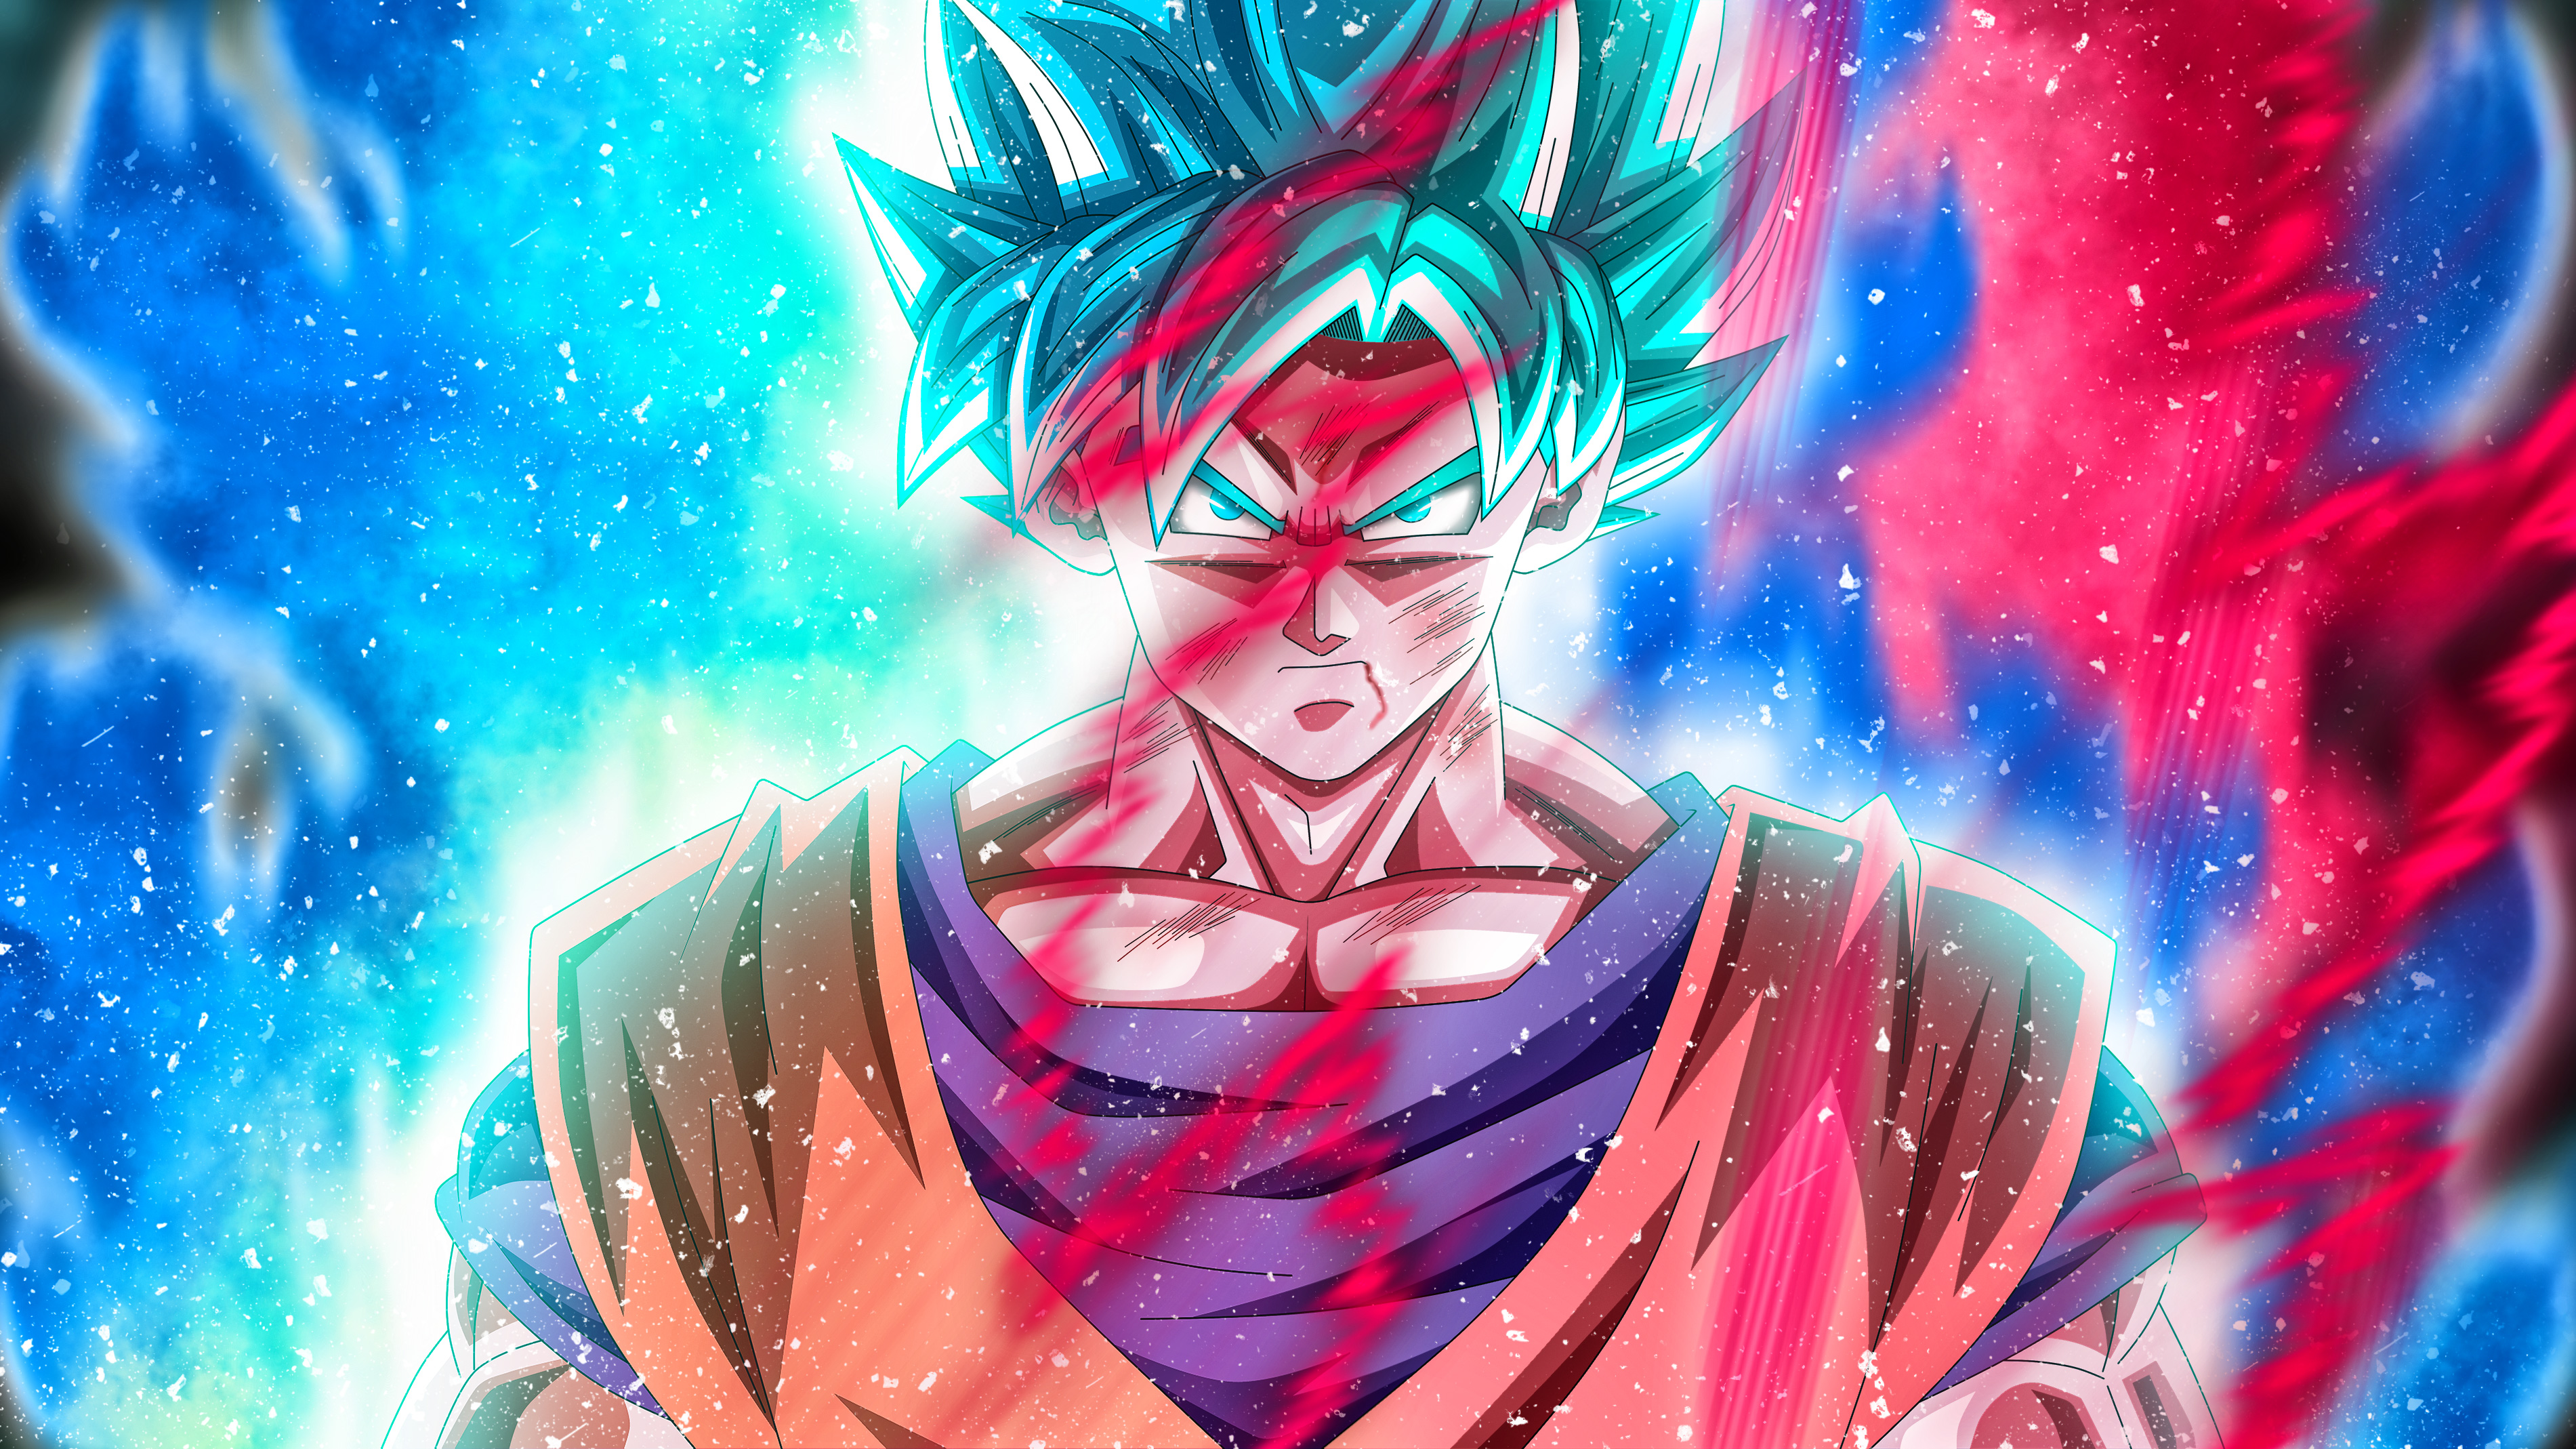 1600x1200 Dragon Ball Super 1600x1200 Resolution Hd 4k Wallpapers Images Backgrounds Photos And Pictures